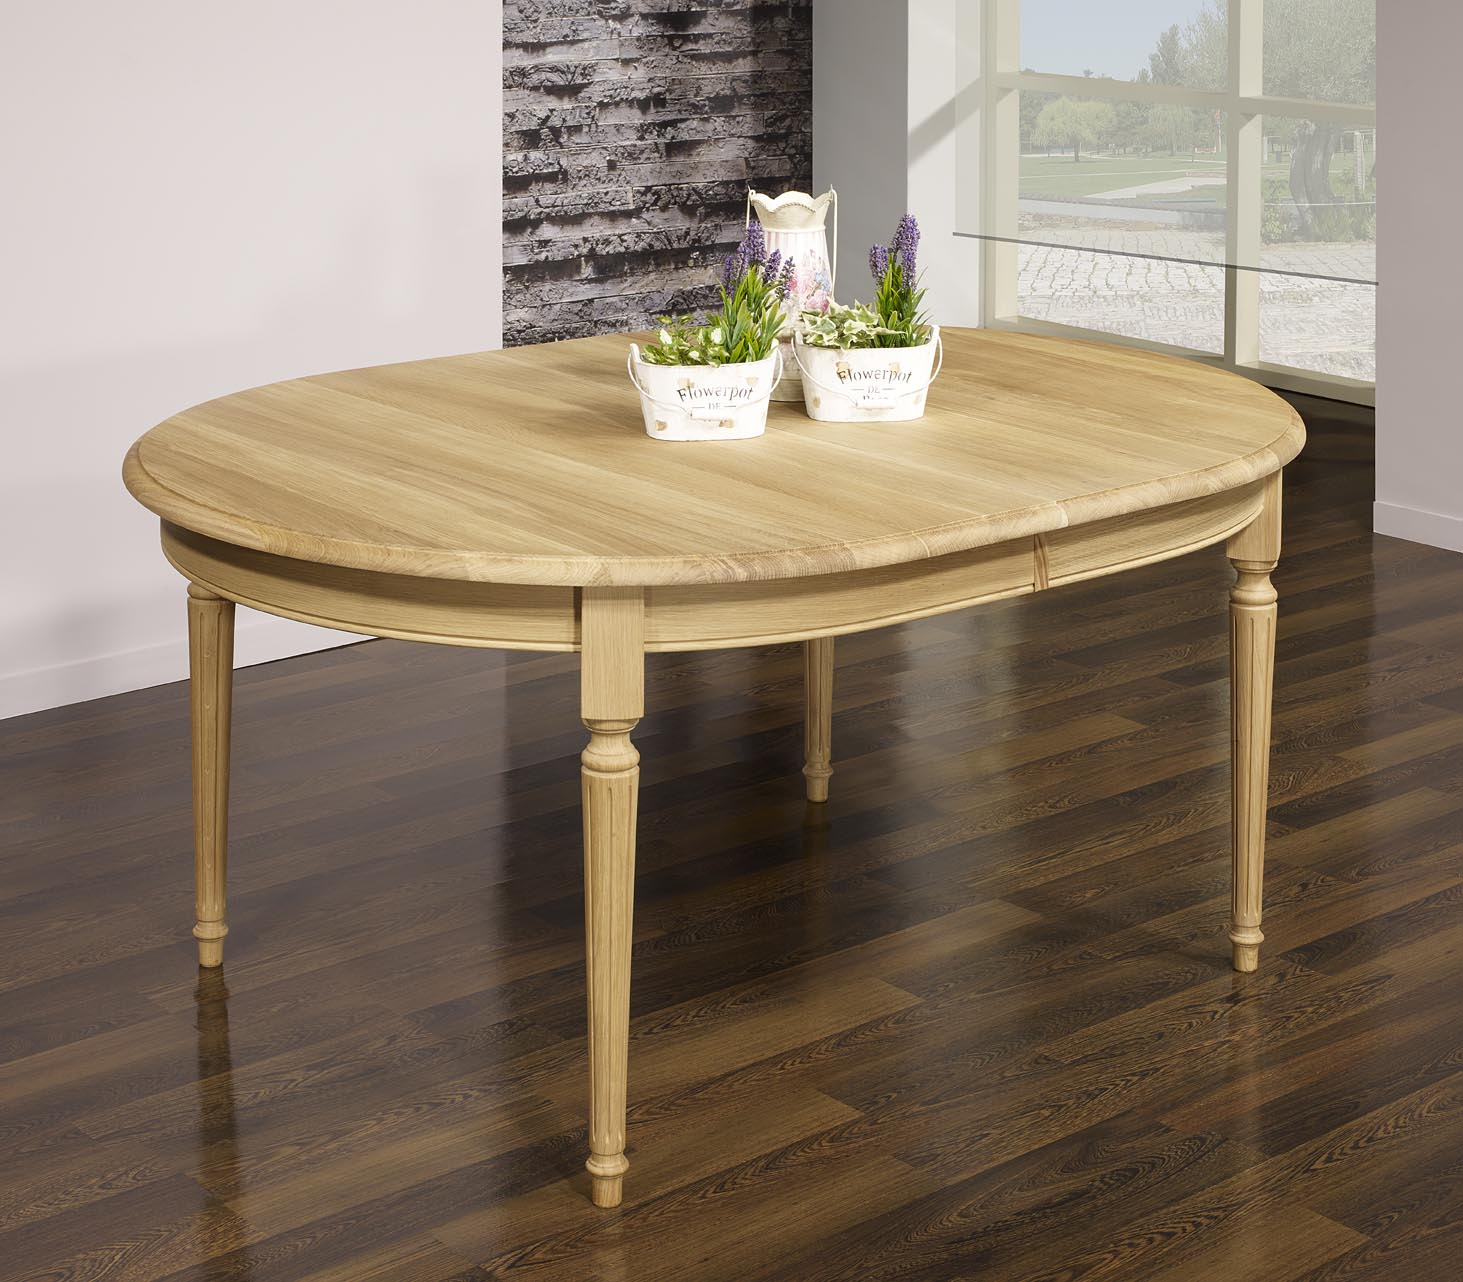 Table ovale 160x120 lambert en ch ne massif de style louis for Table de cuisine ovale